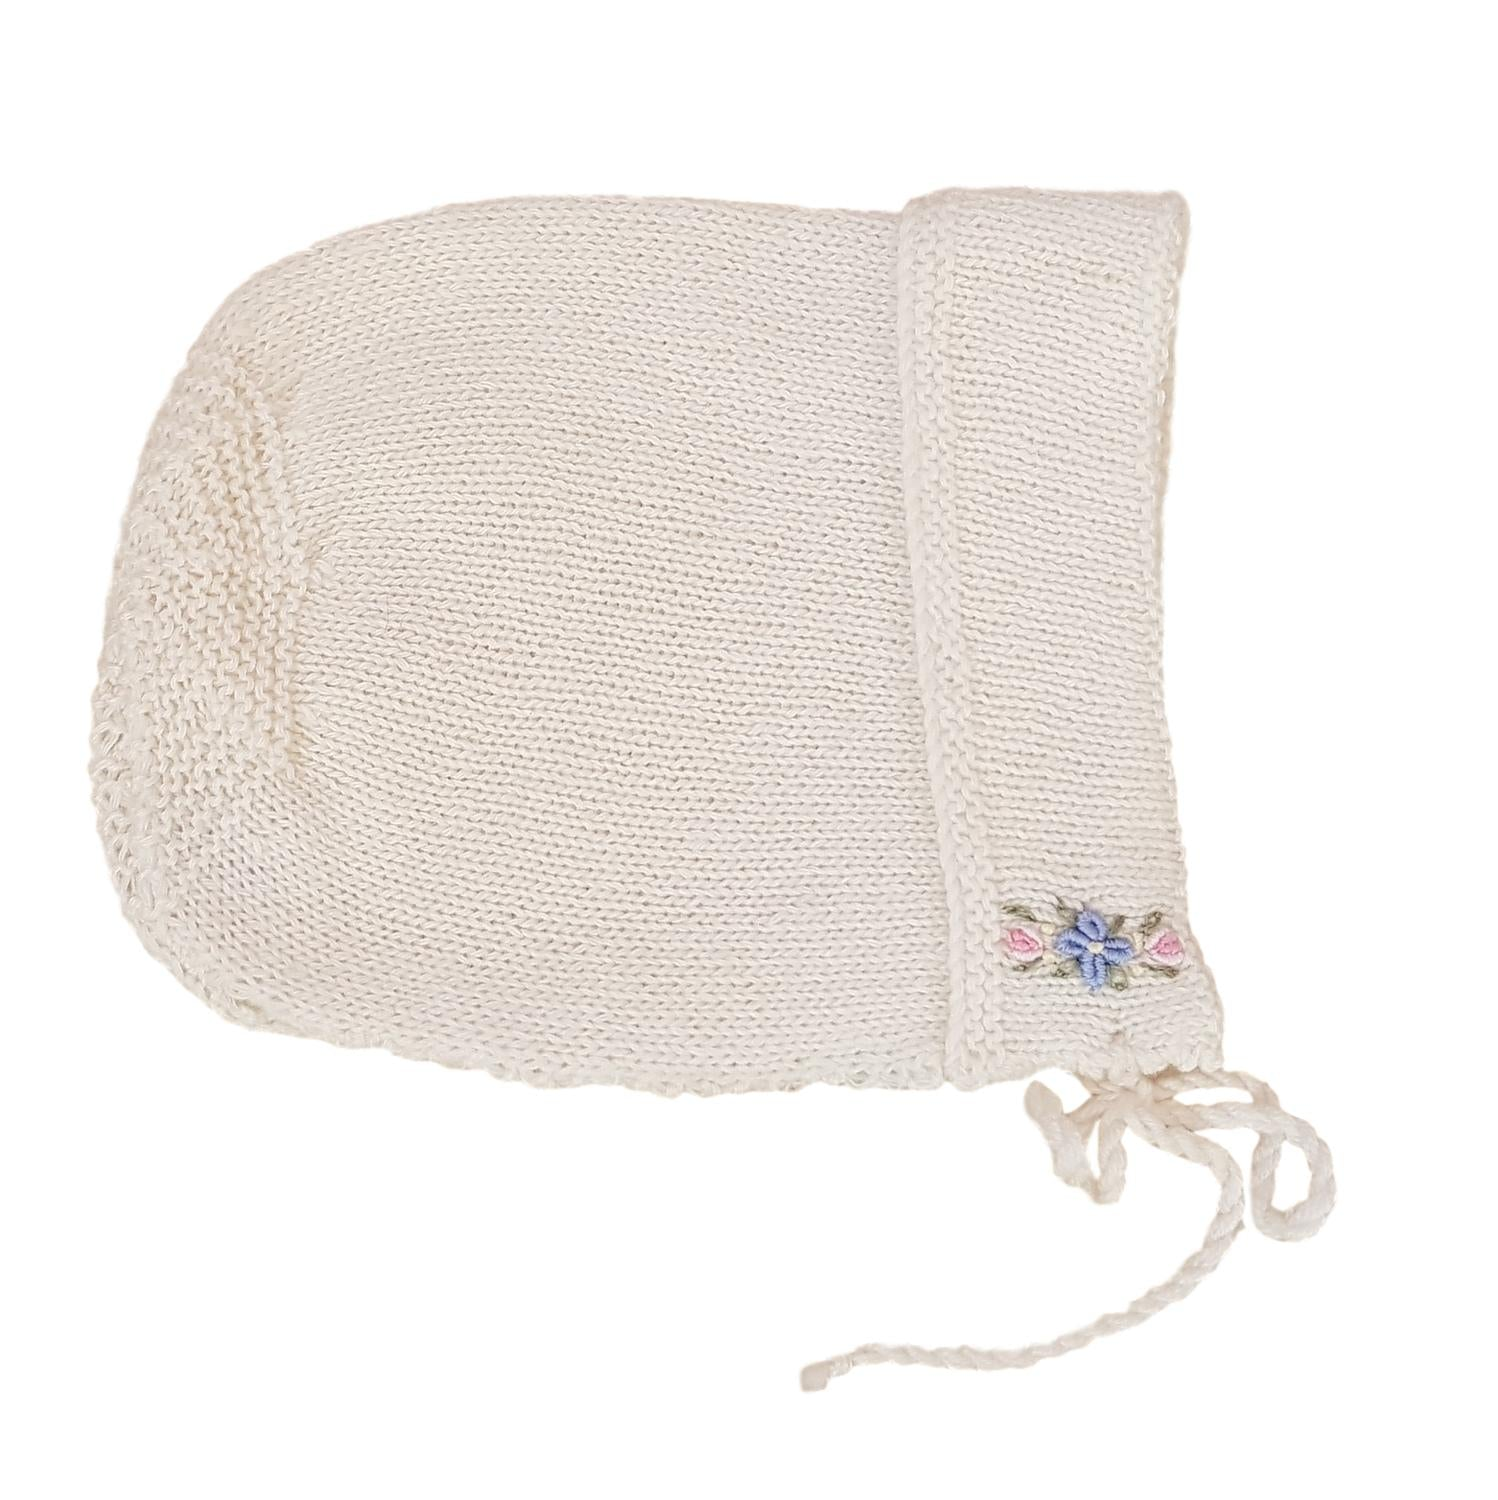 Sue Hill cashmere baby girl bonnet forget me not design